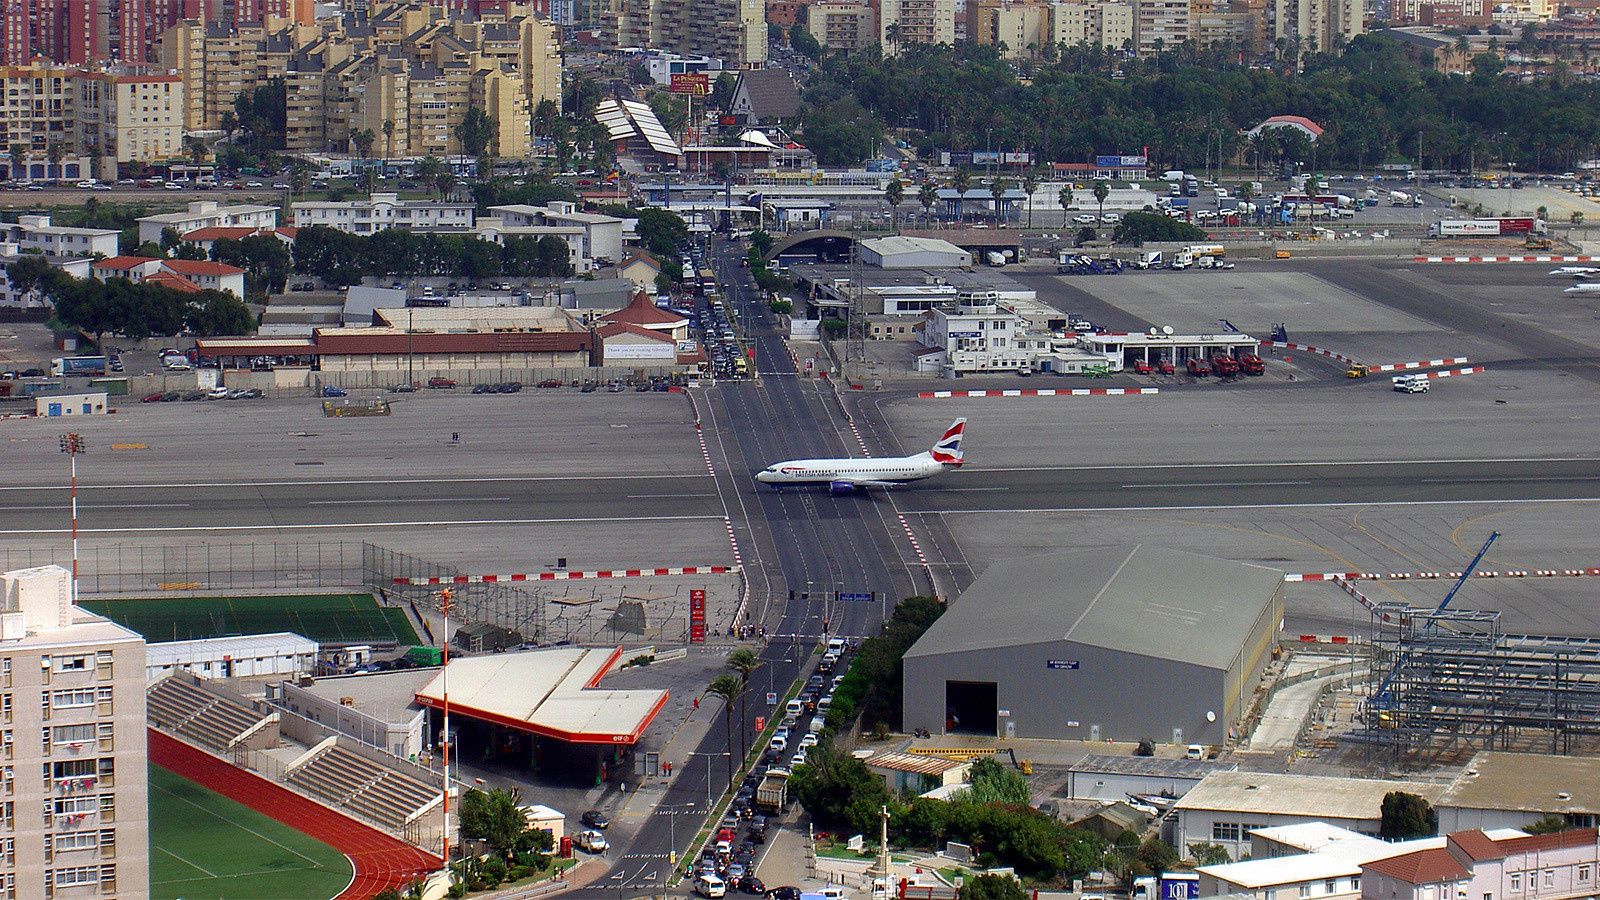 The runway at the Gibraltar International Airport has a regular road crossing through it.